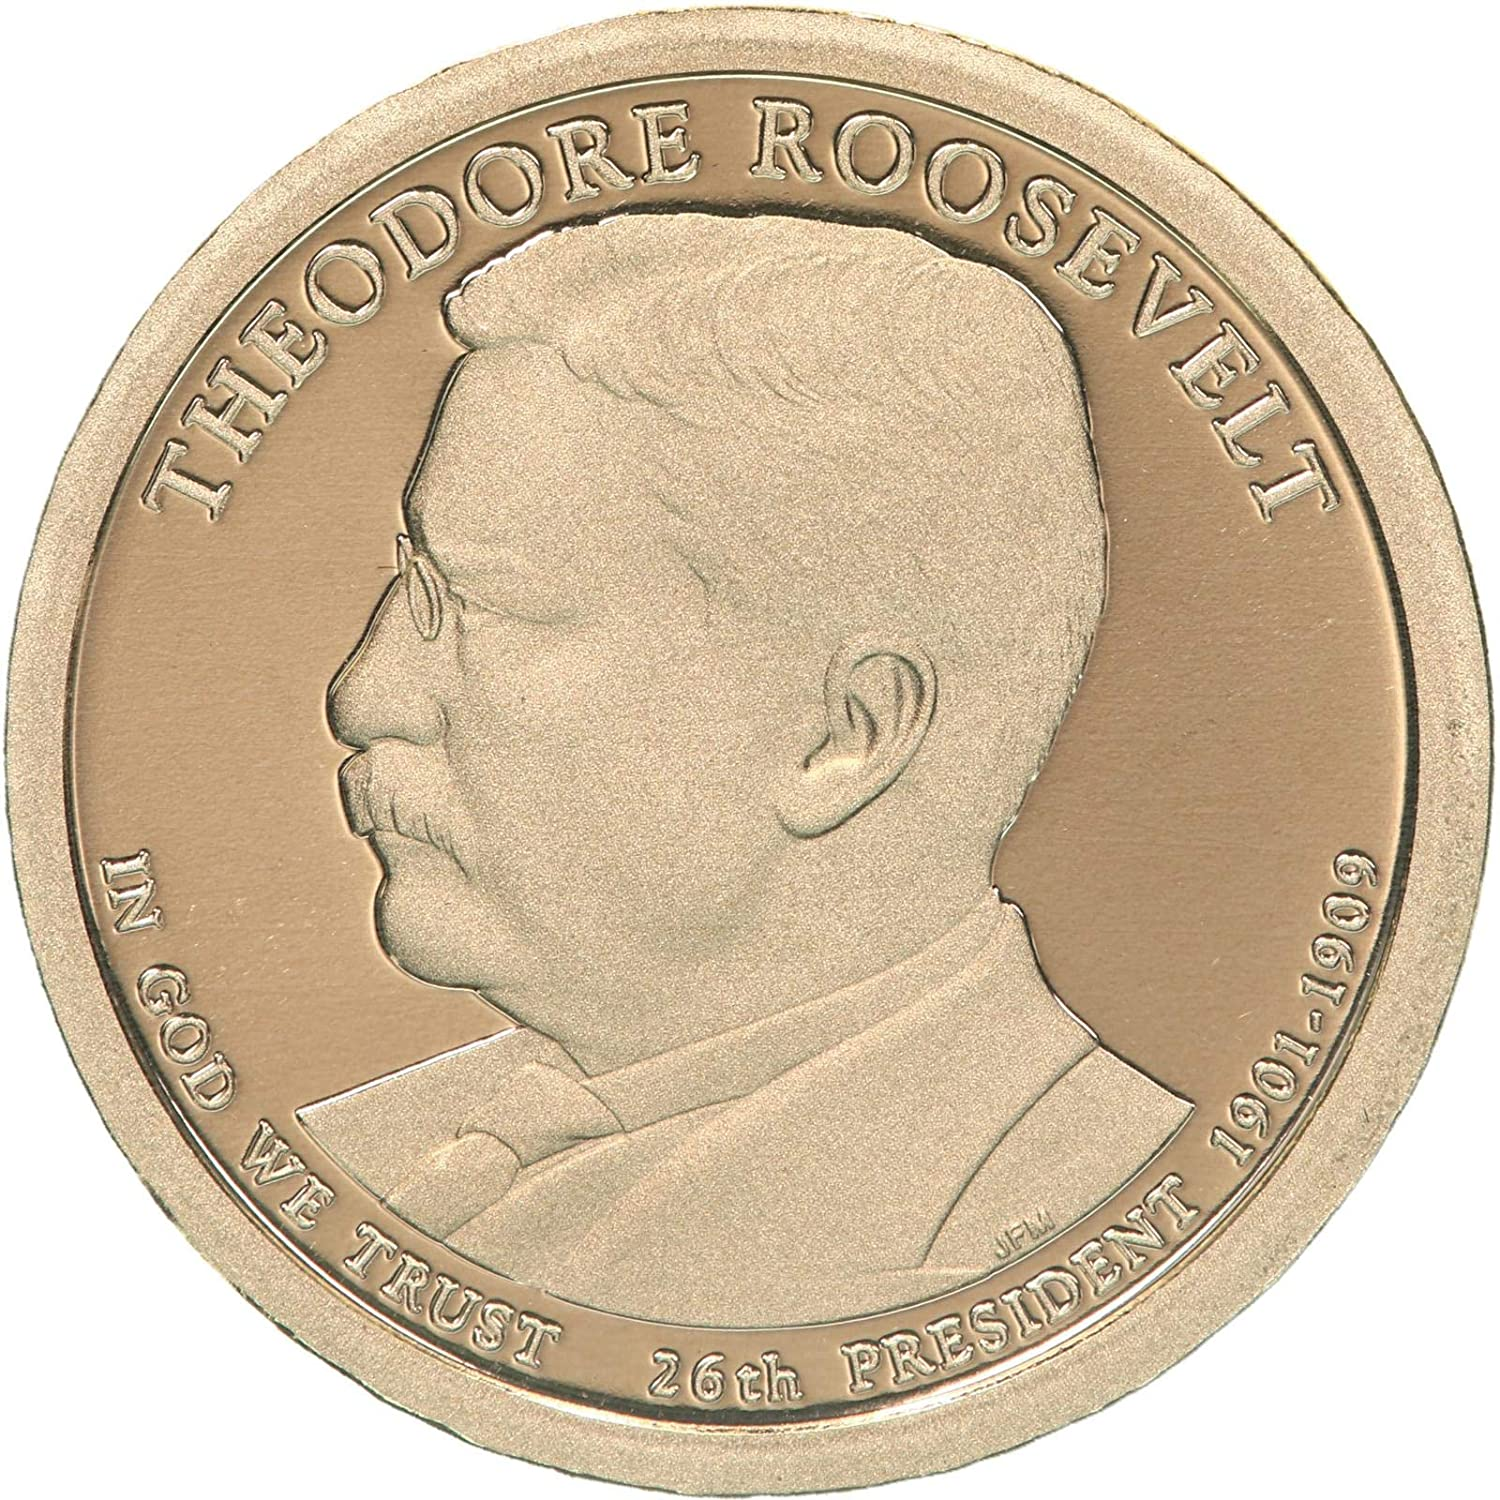 2013 P Theodore Roosevelt Presidential Dollar ~ Pos A ~ U.S Coin from Mint Set